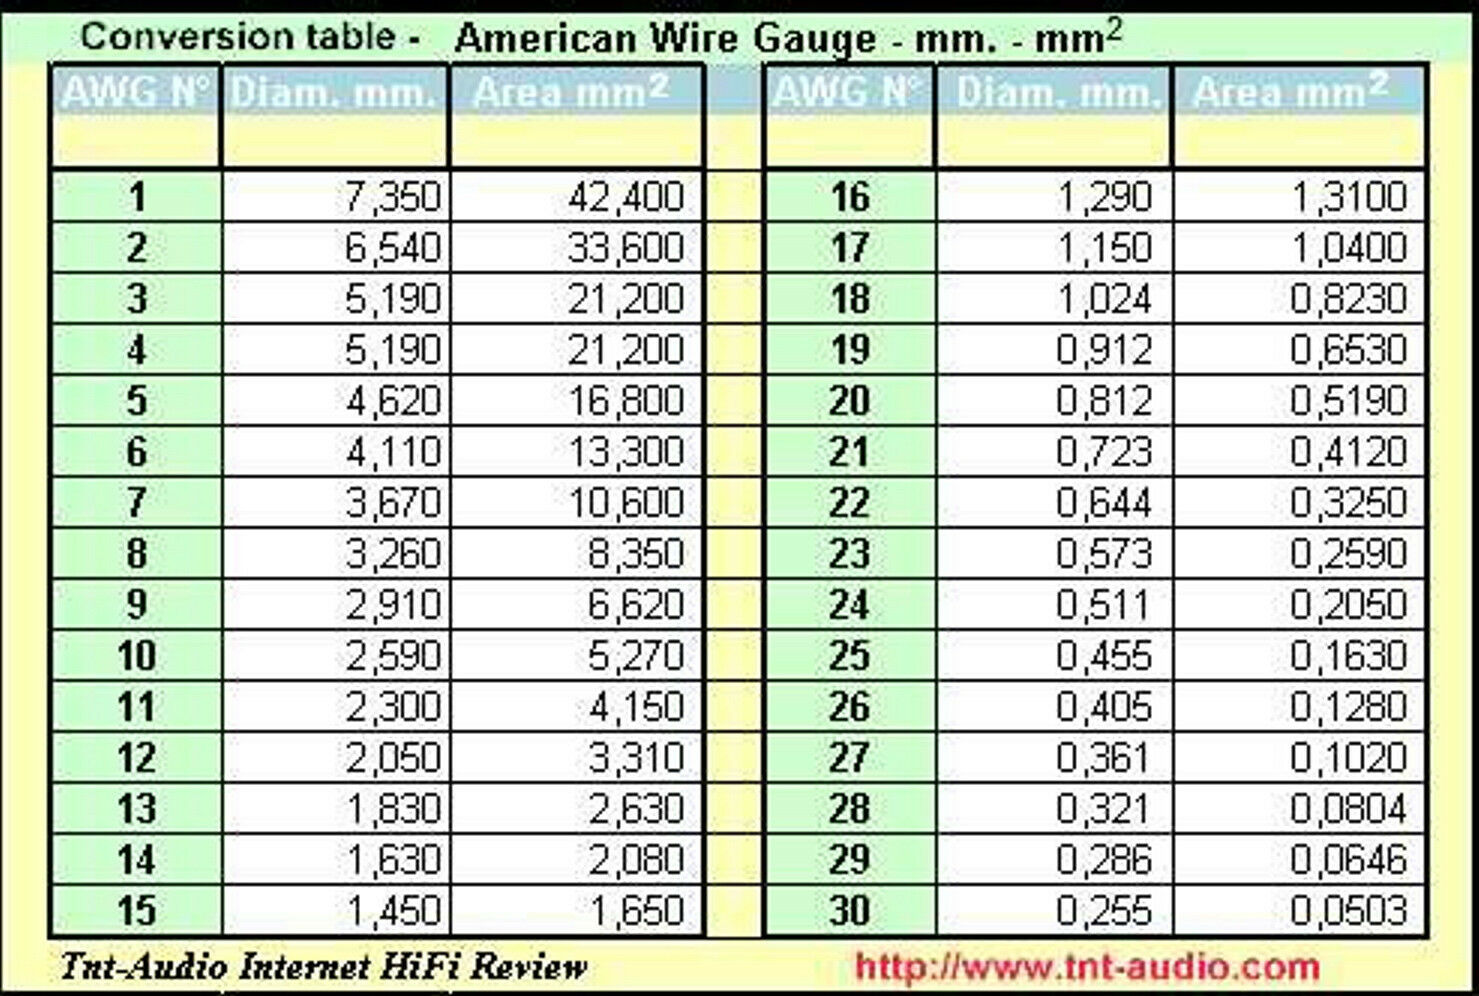 Great american wire gauge conversion pictures inspiration generous american wire gauge table photos electrical and wiring keyboard keysfo Gallery